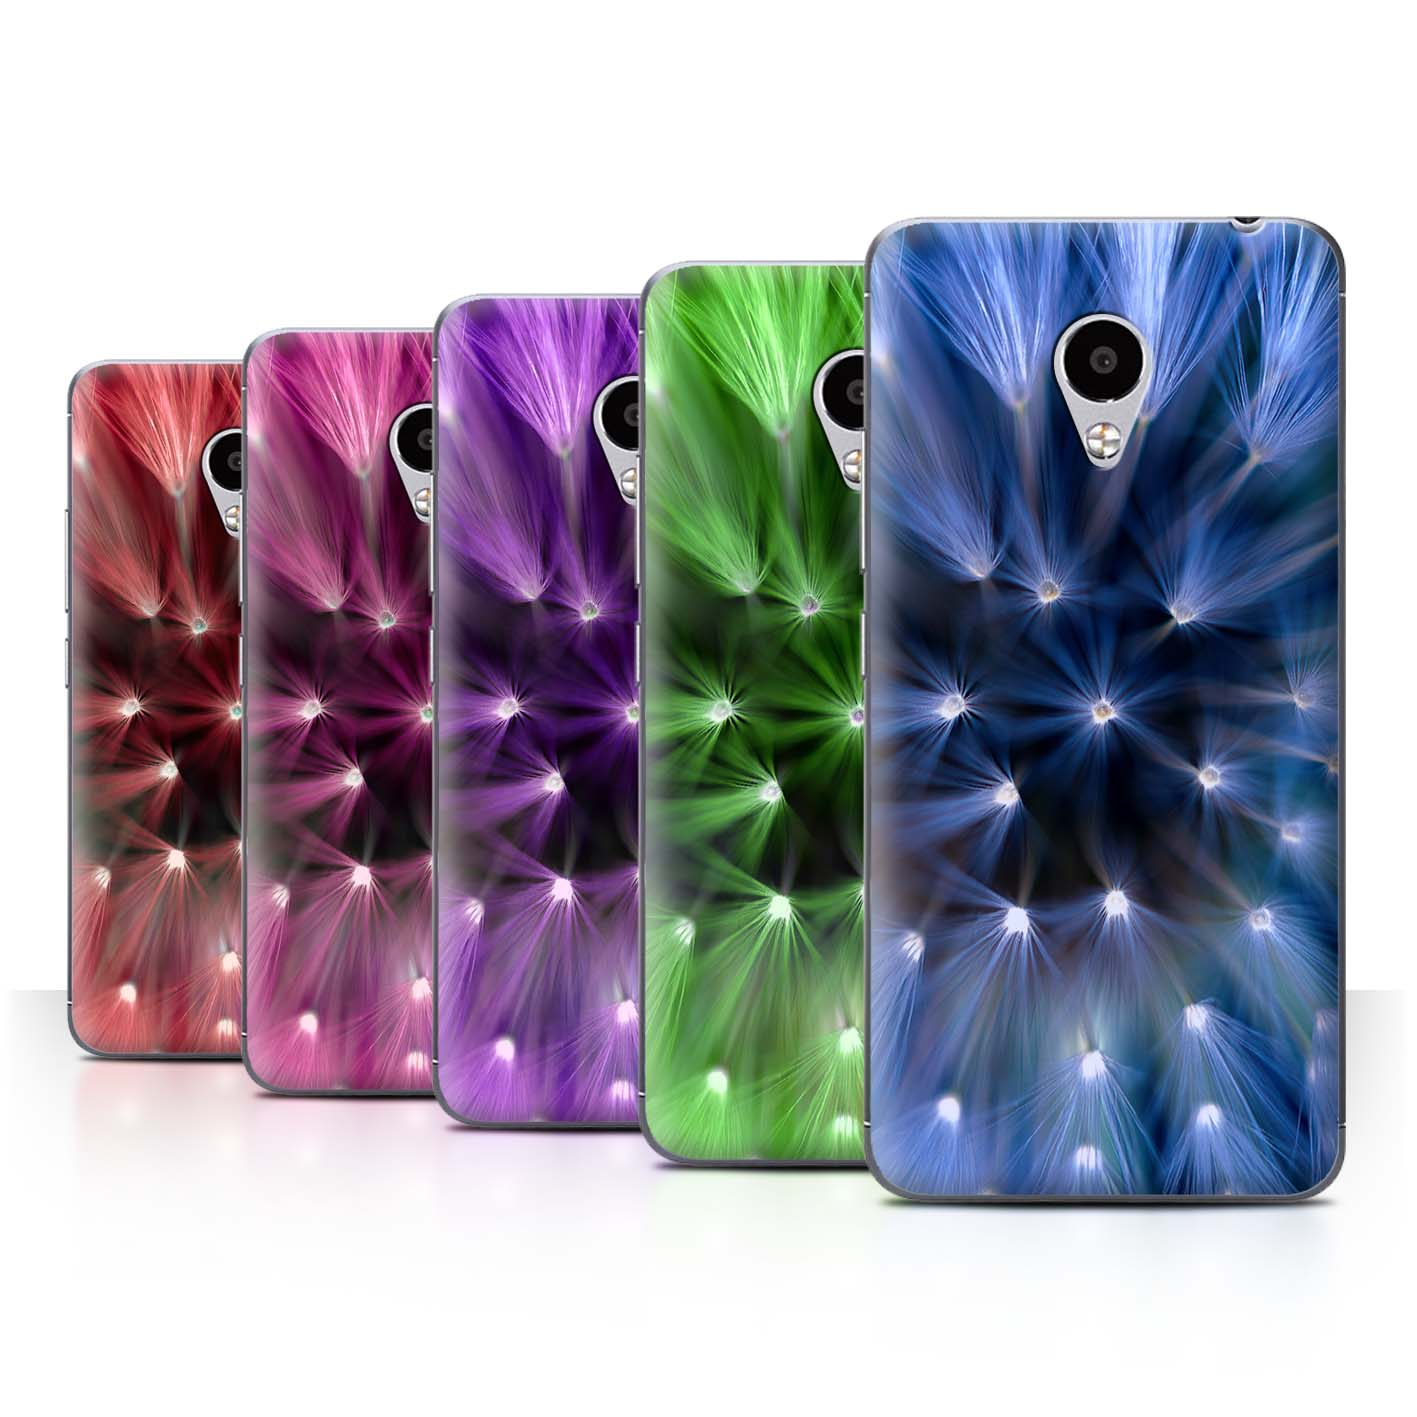 STUFF4-Back-Case-Cover-Skin-for-Meizu-M3S-Floral-Flower-Lights